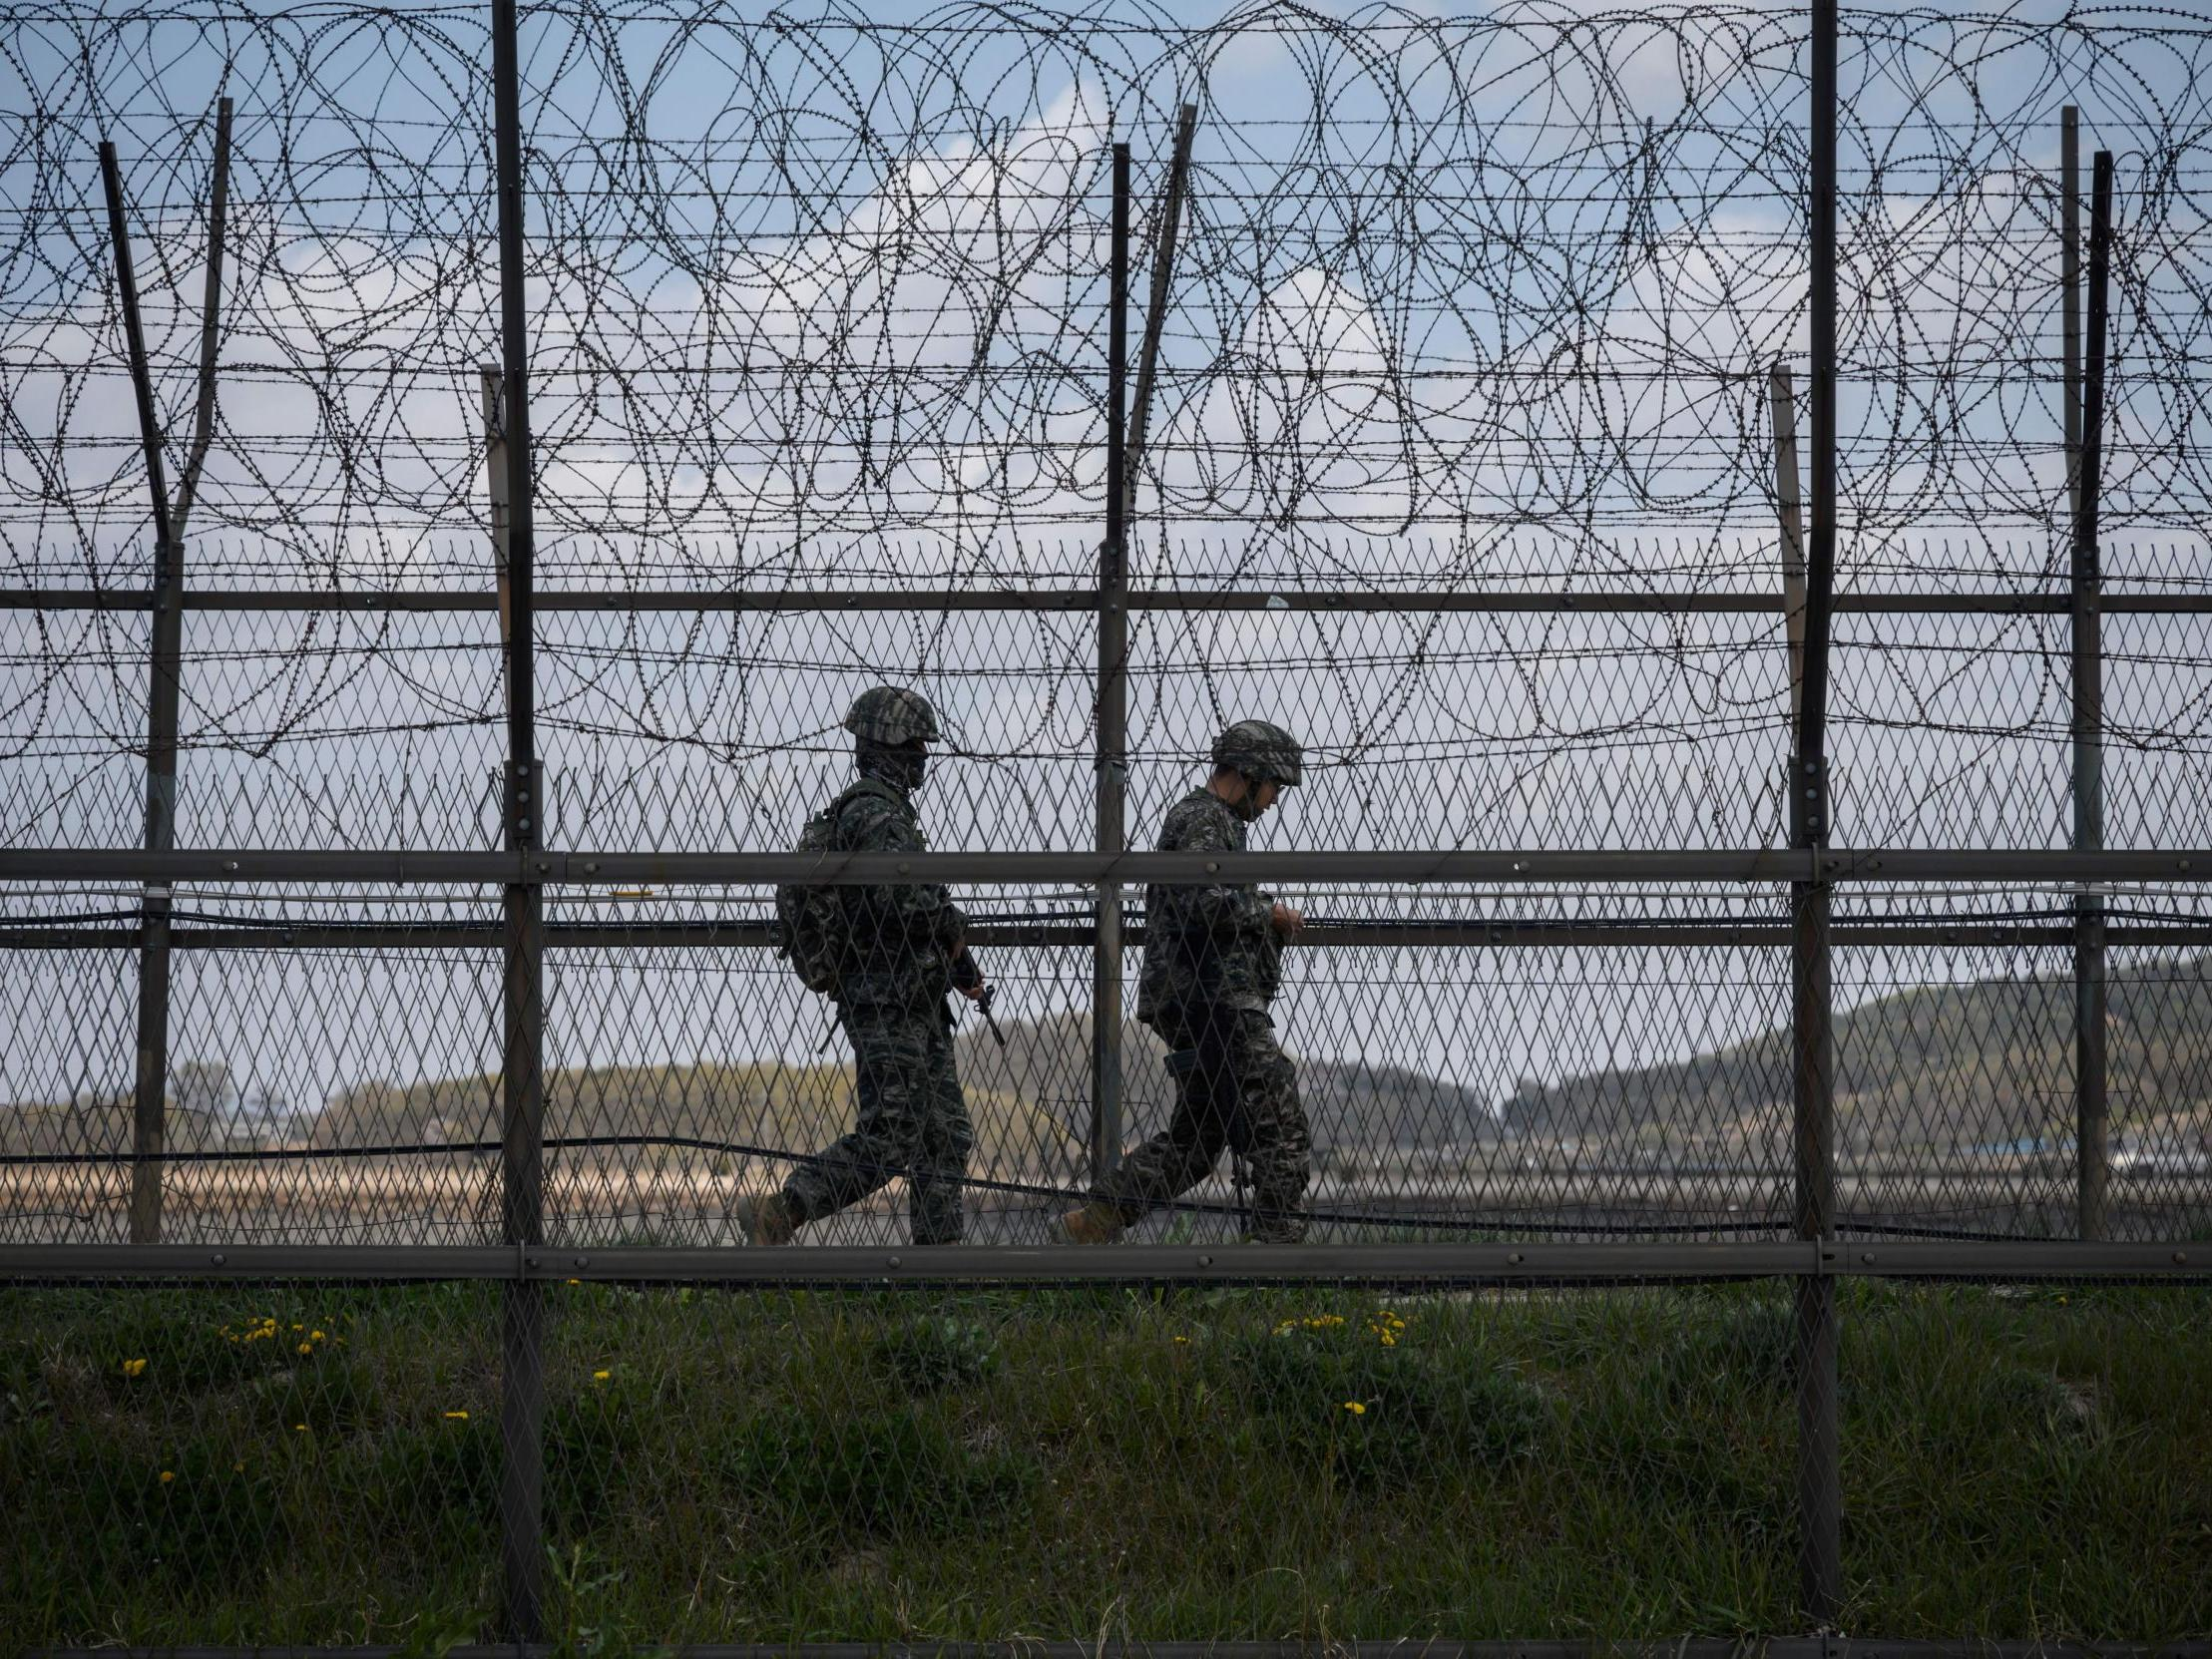 North and South Korea both violated armistice in exchange of fire at DMZ, says UN probe